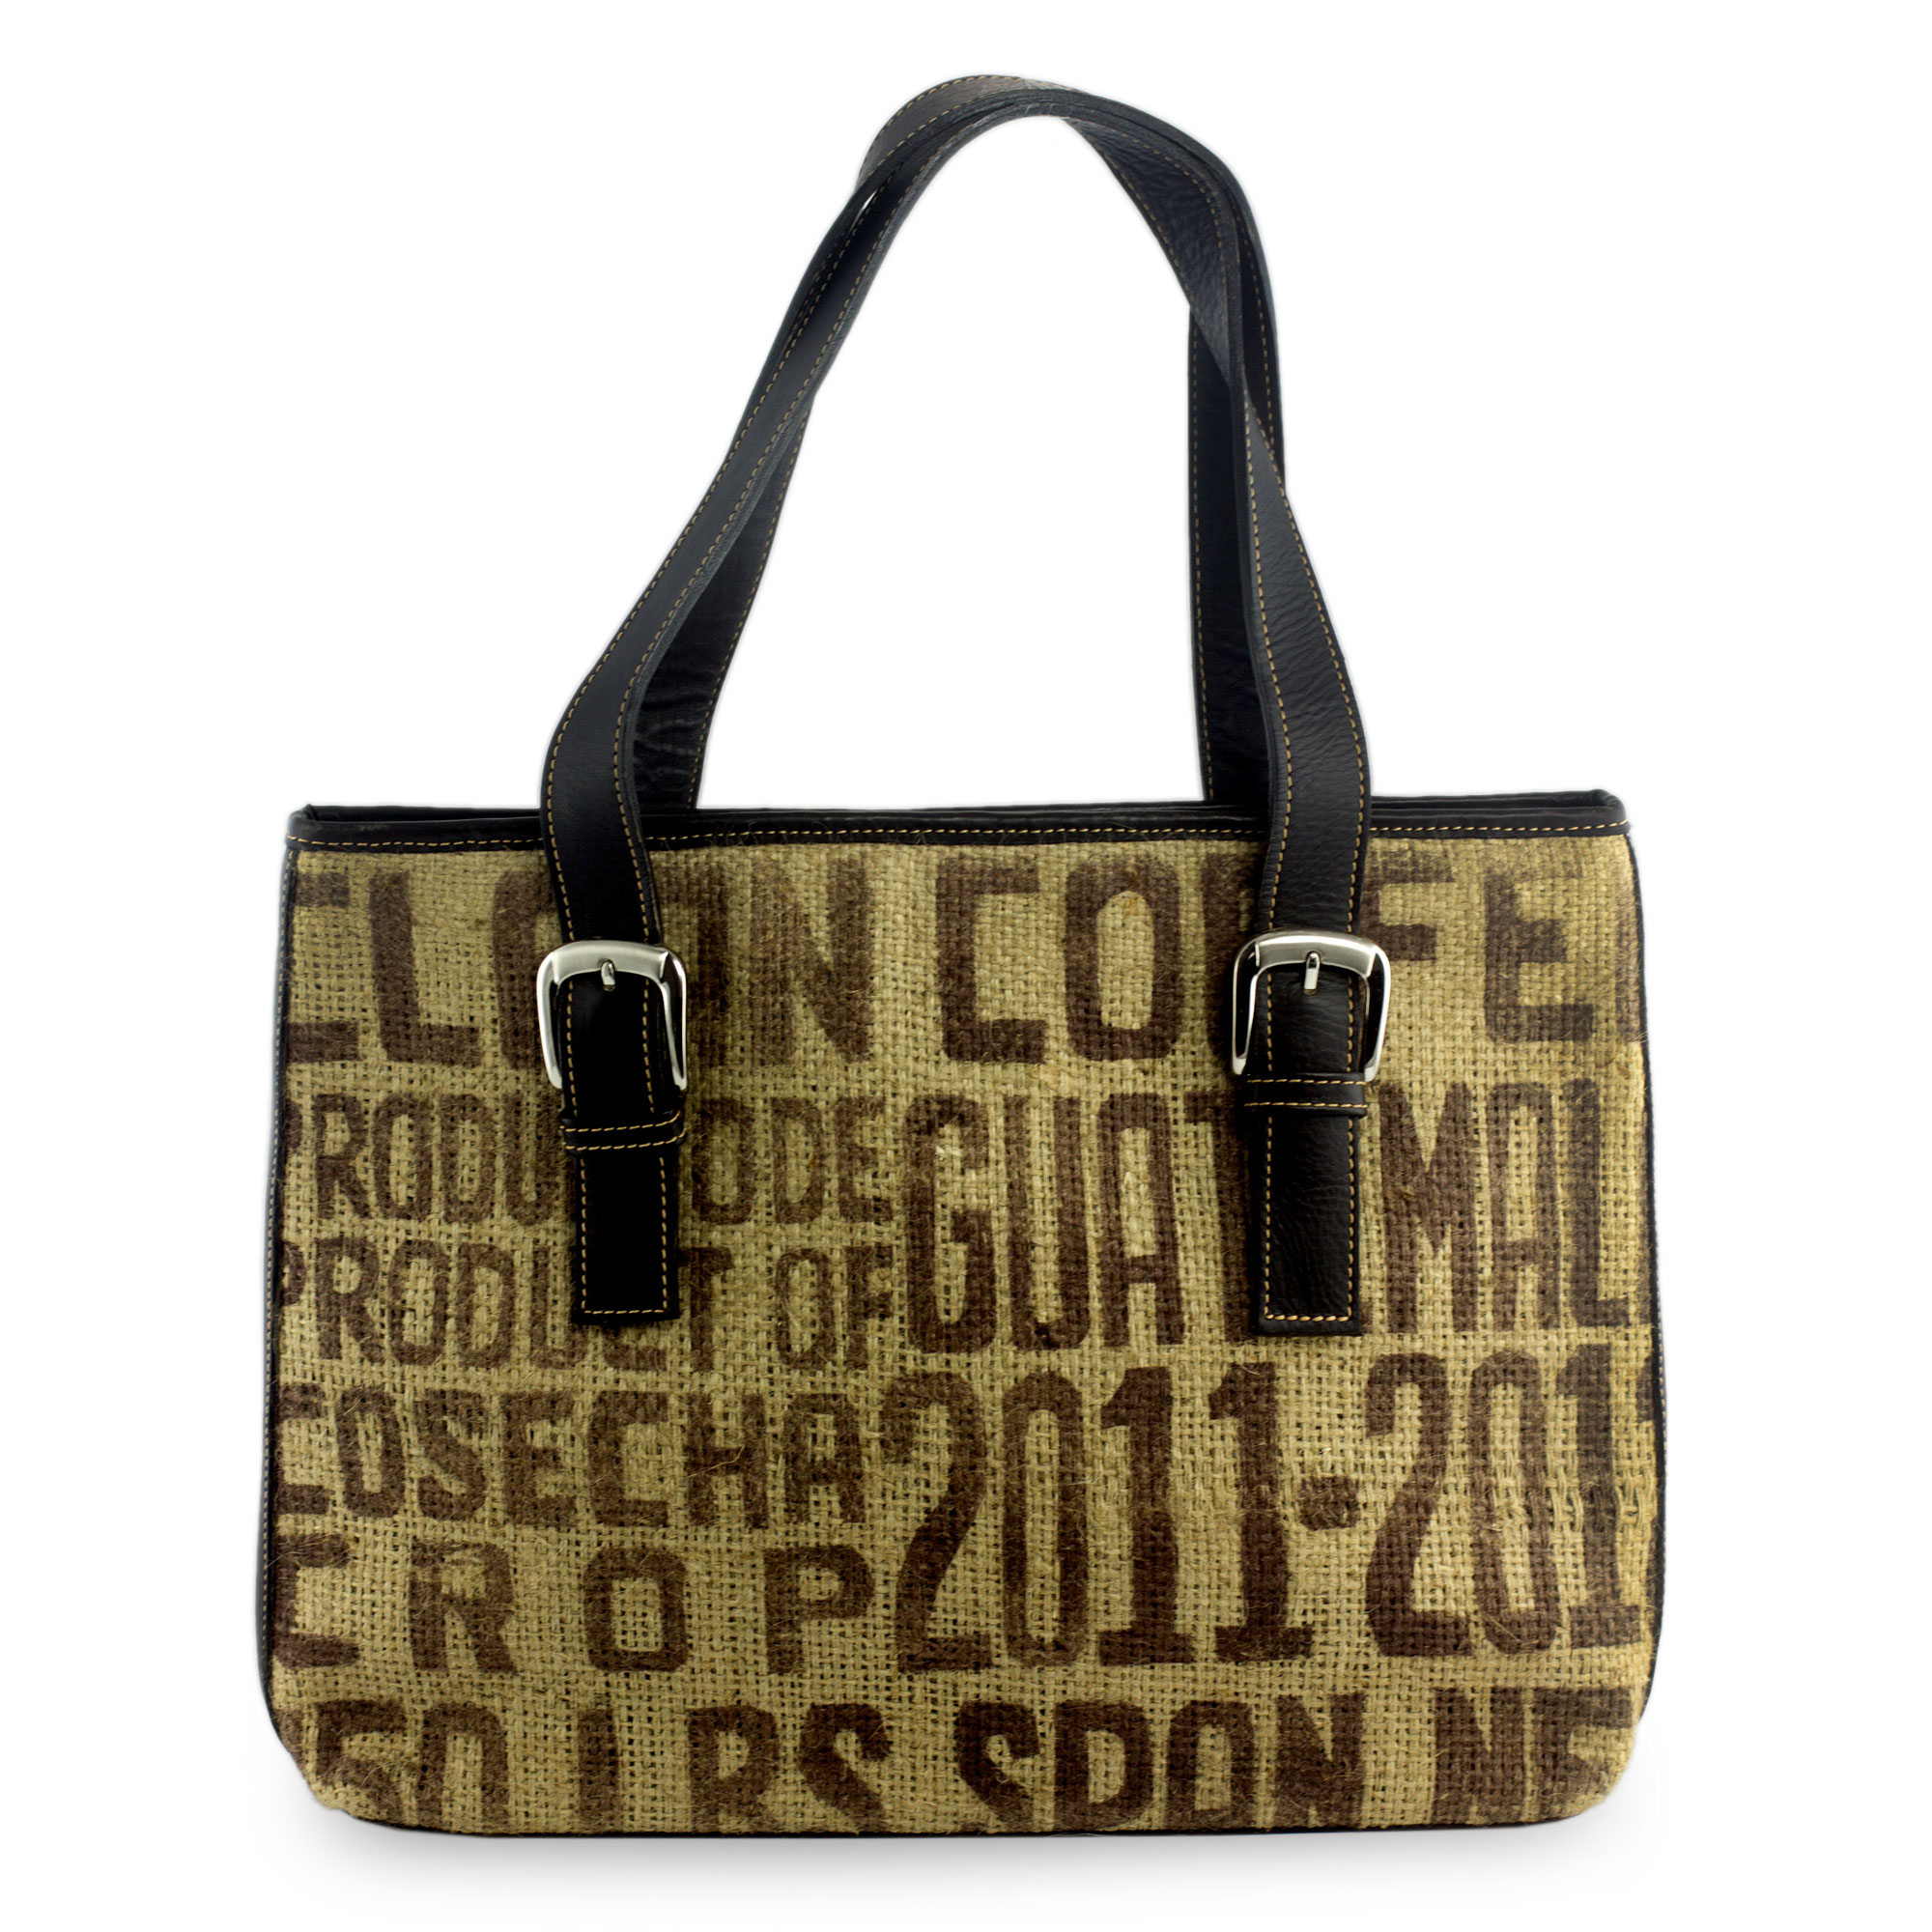 Recycled Jute and Leather Shoulder Bag from Guatemala, 'Clean Coffee'